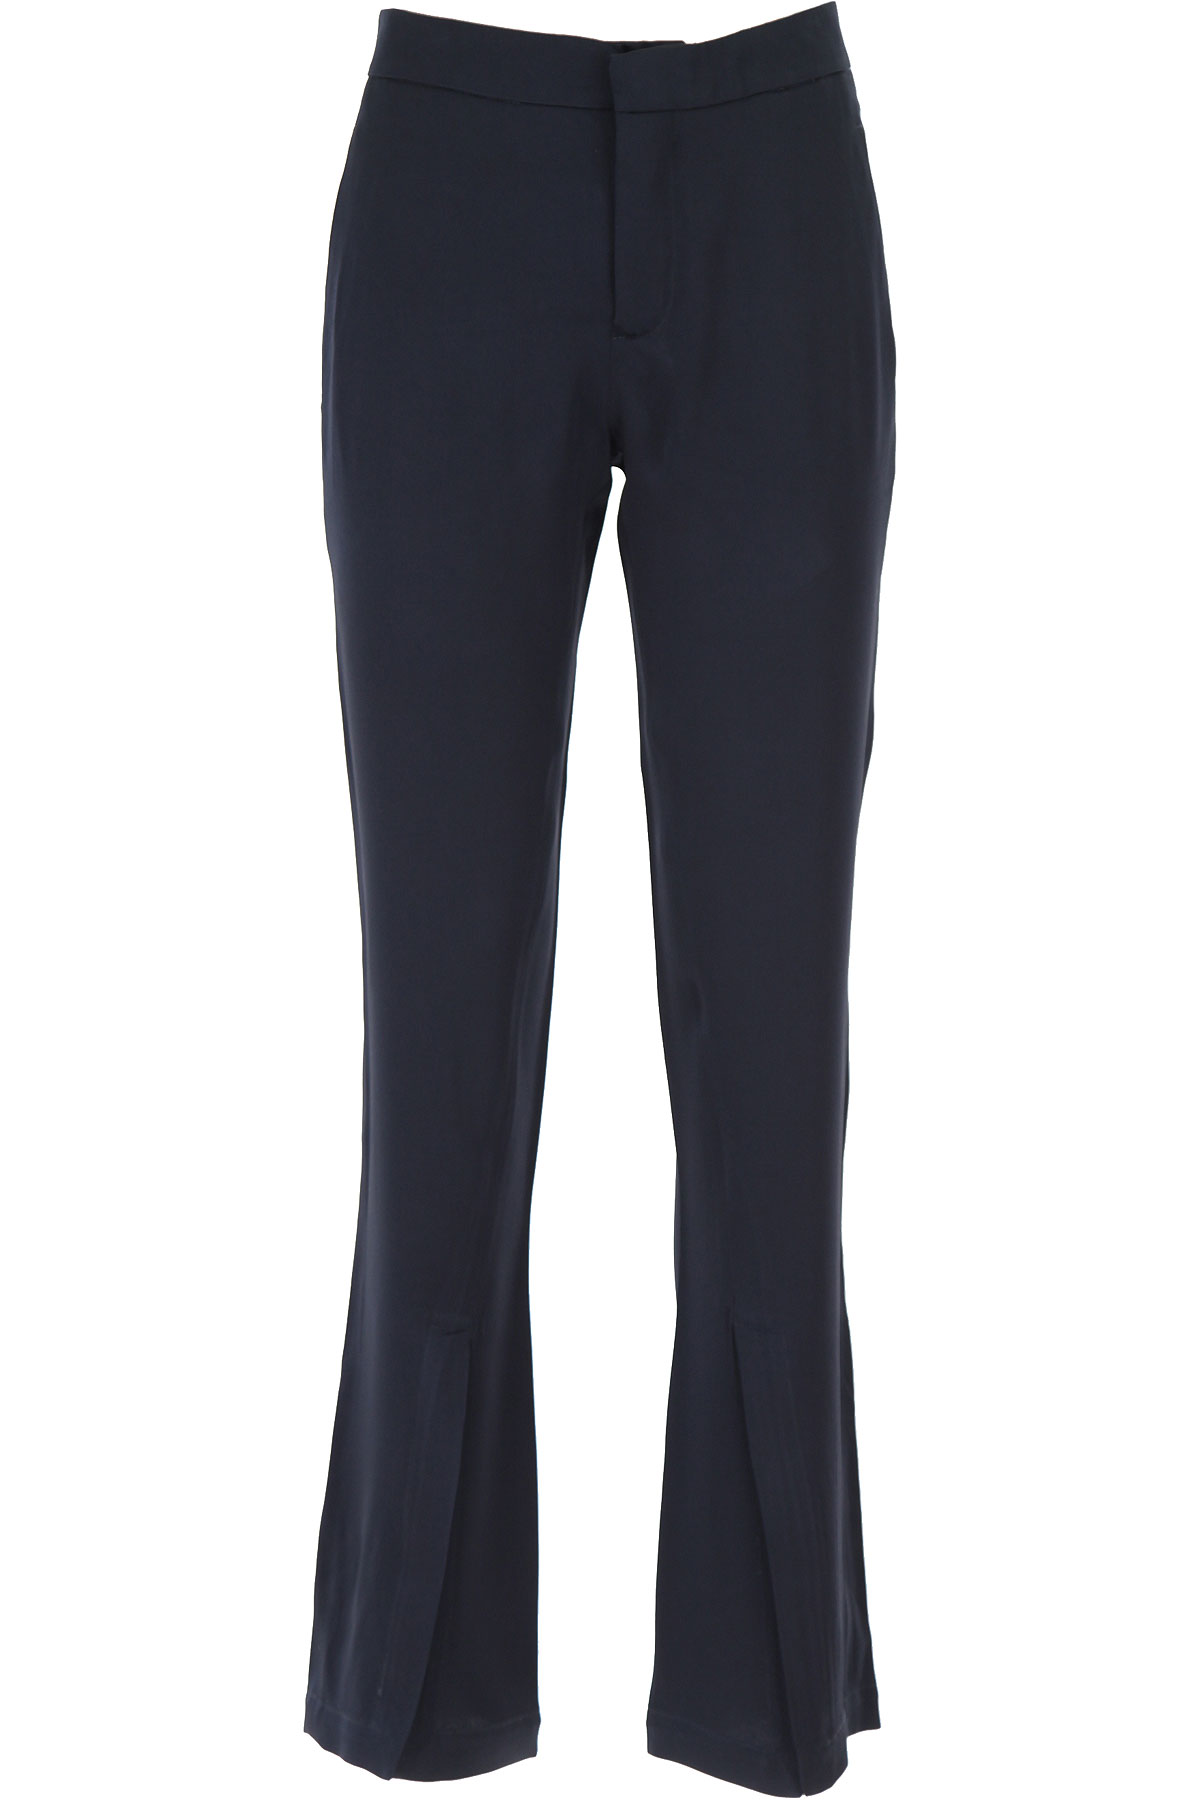 Semicouture Pants for Women On Sale, Midnight Blue, acetate, 2019, 8